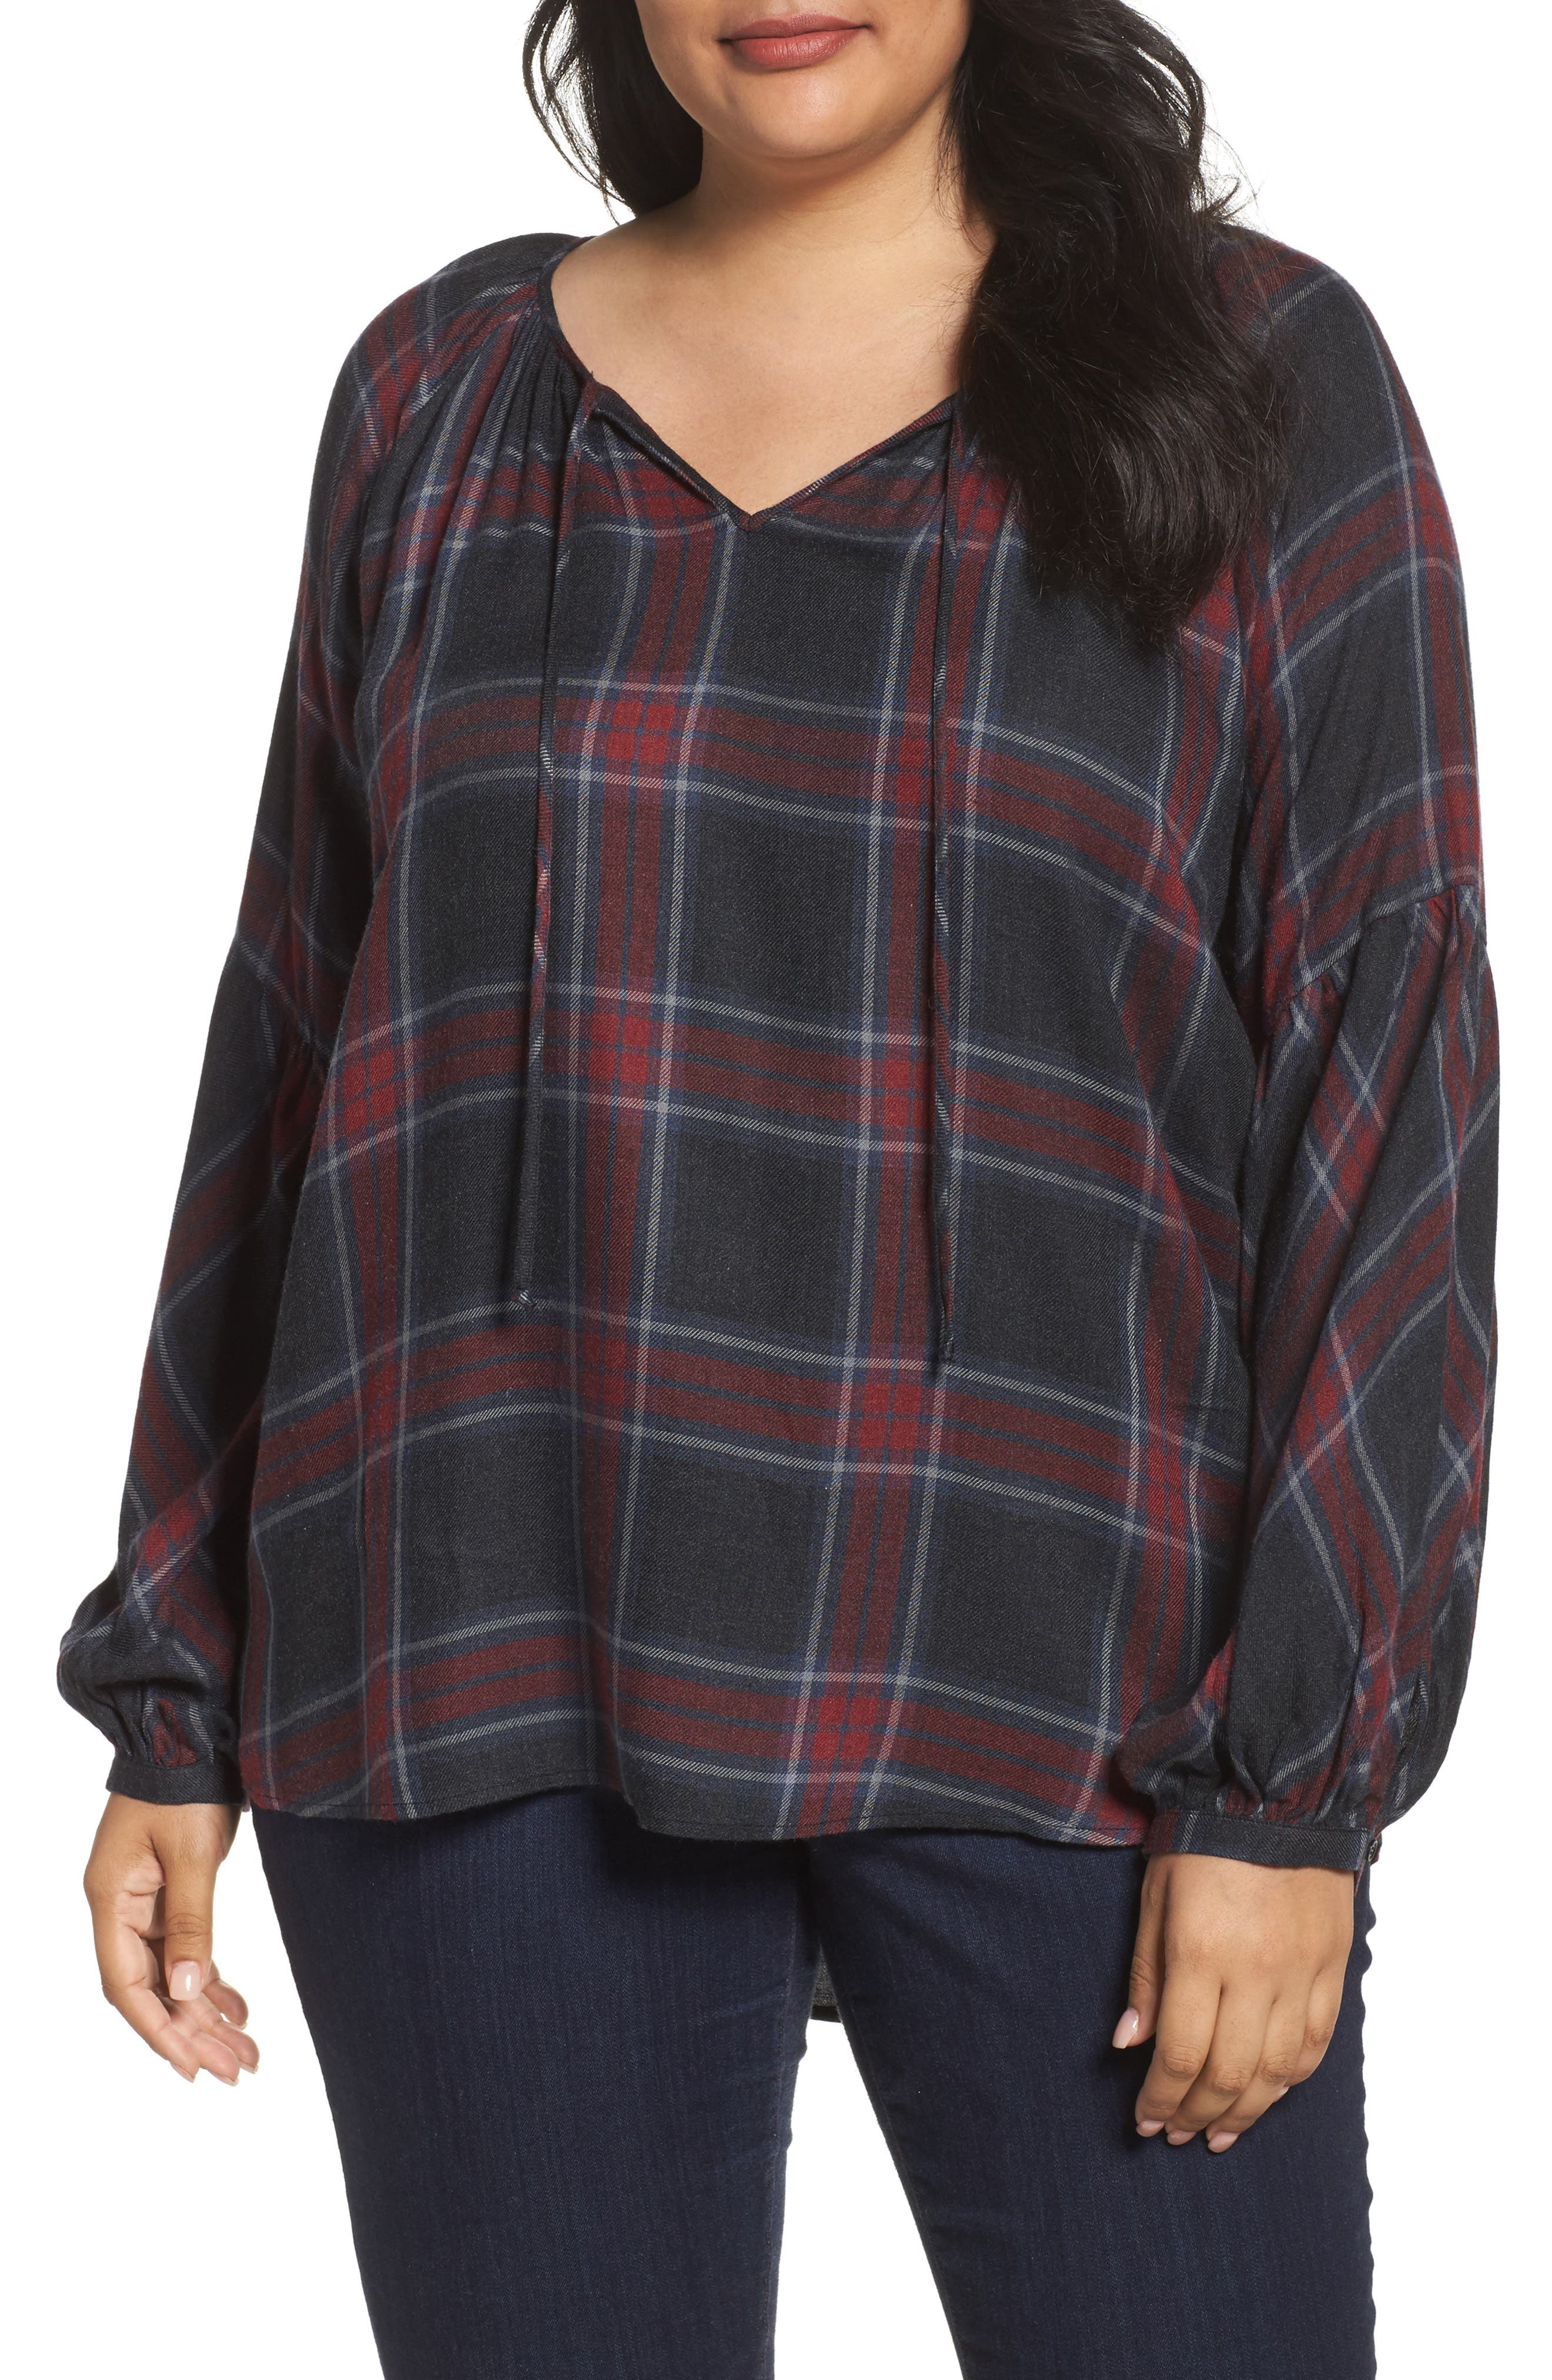 Main Image - Two by Vince Camuto Serenade Tie Neck Plaid Top (Plus Size)